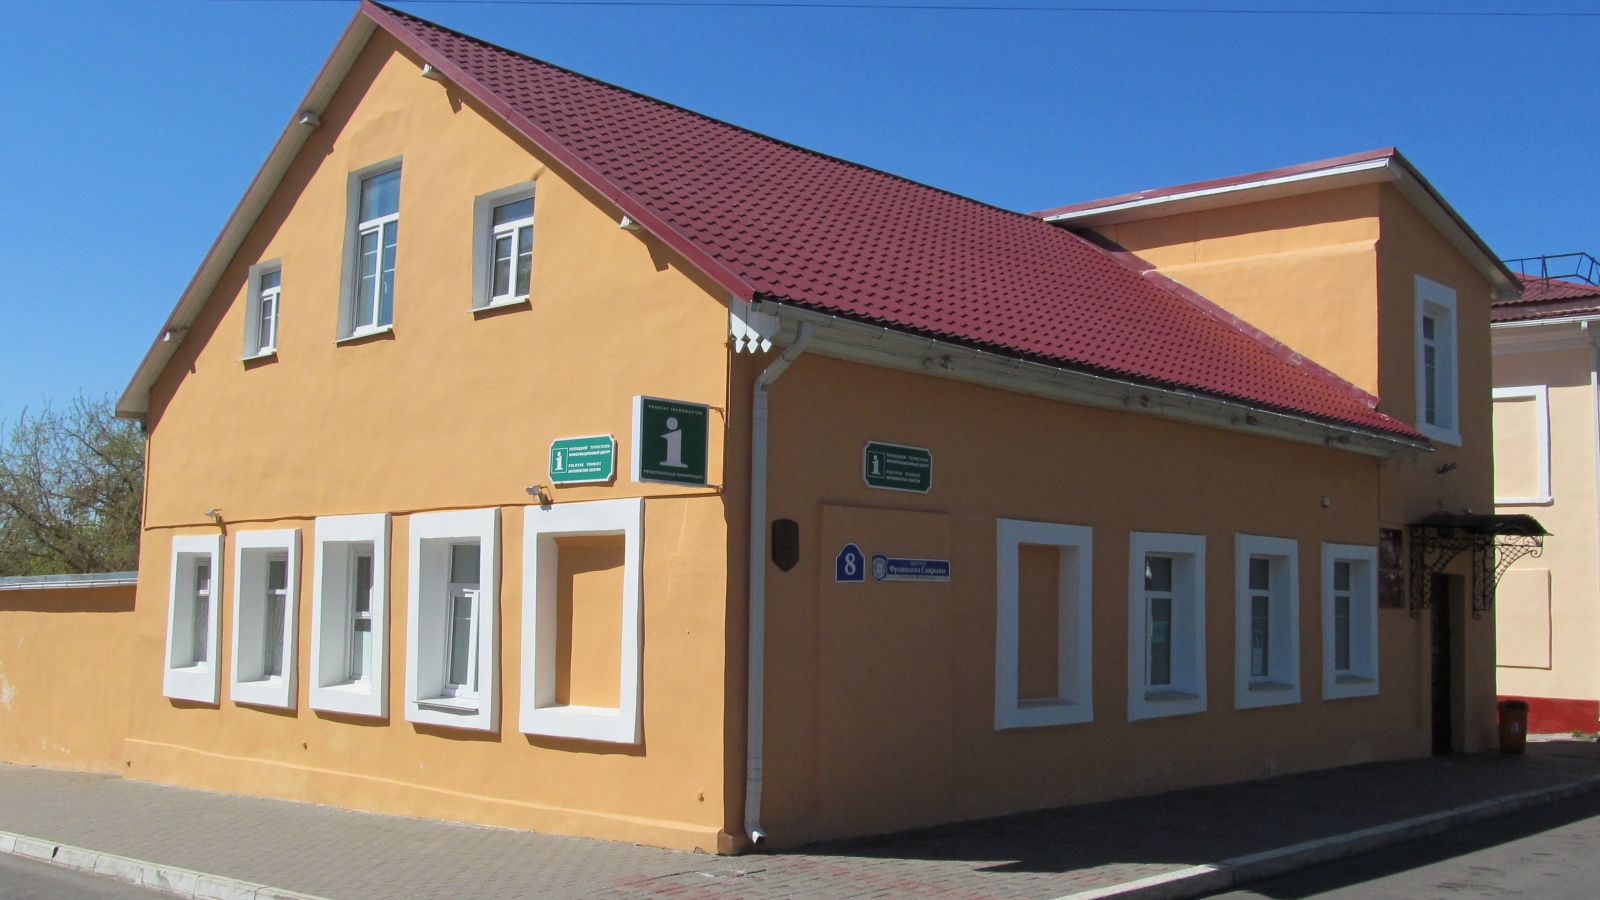 Information centre in Polack